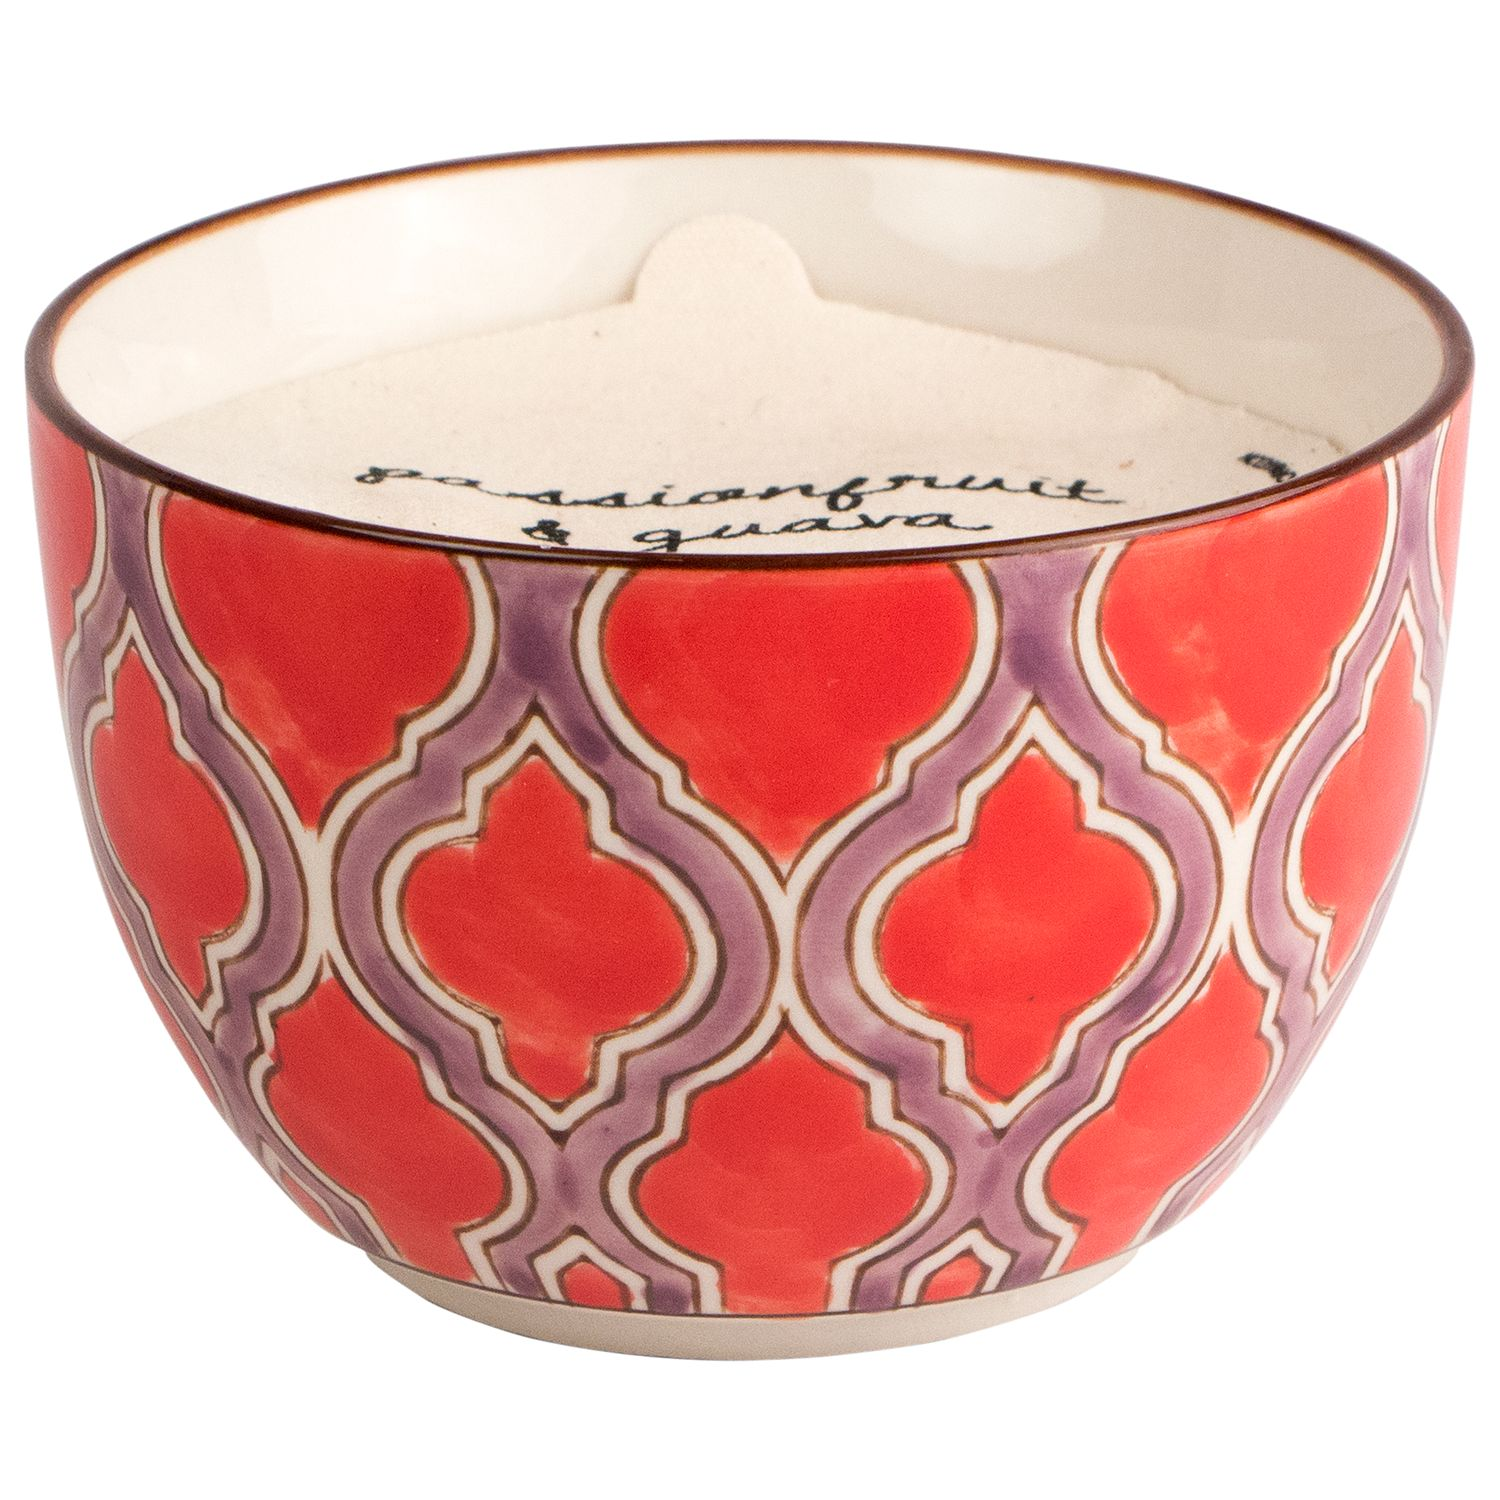 Paddywax Paddywax Boheme Large Passionfruit and Guava Scented Candle